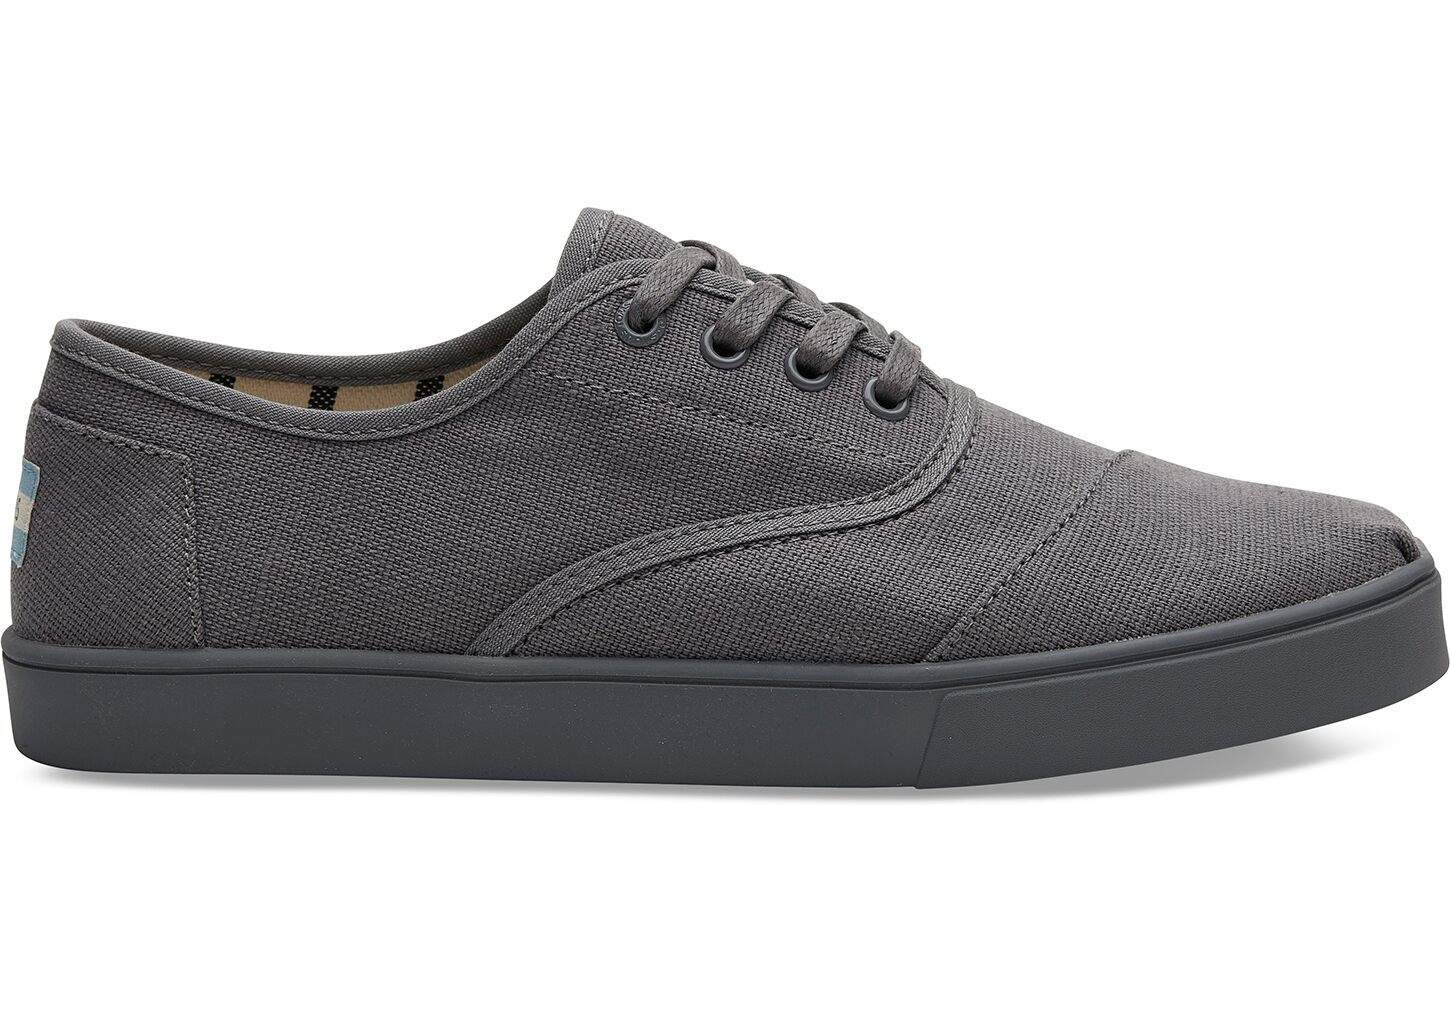 Toms Shoes Extra 25% Off: Men's Heritage Canvas Cordones Venice Shoes